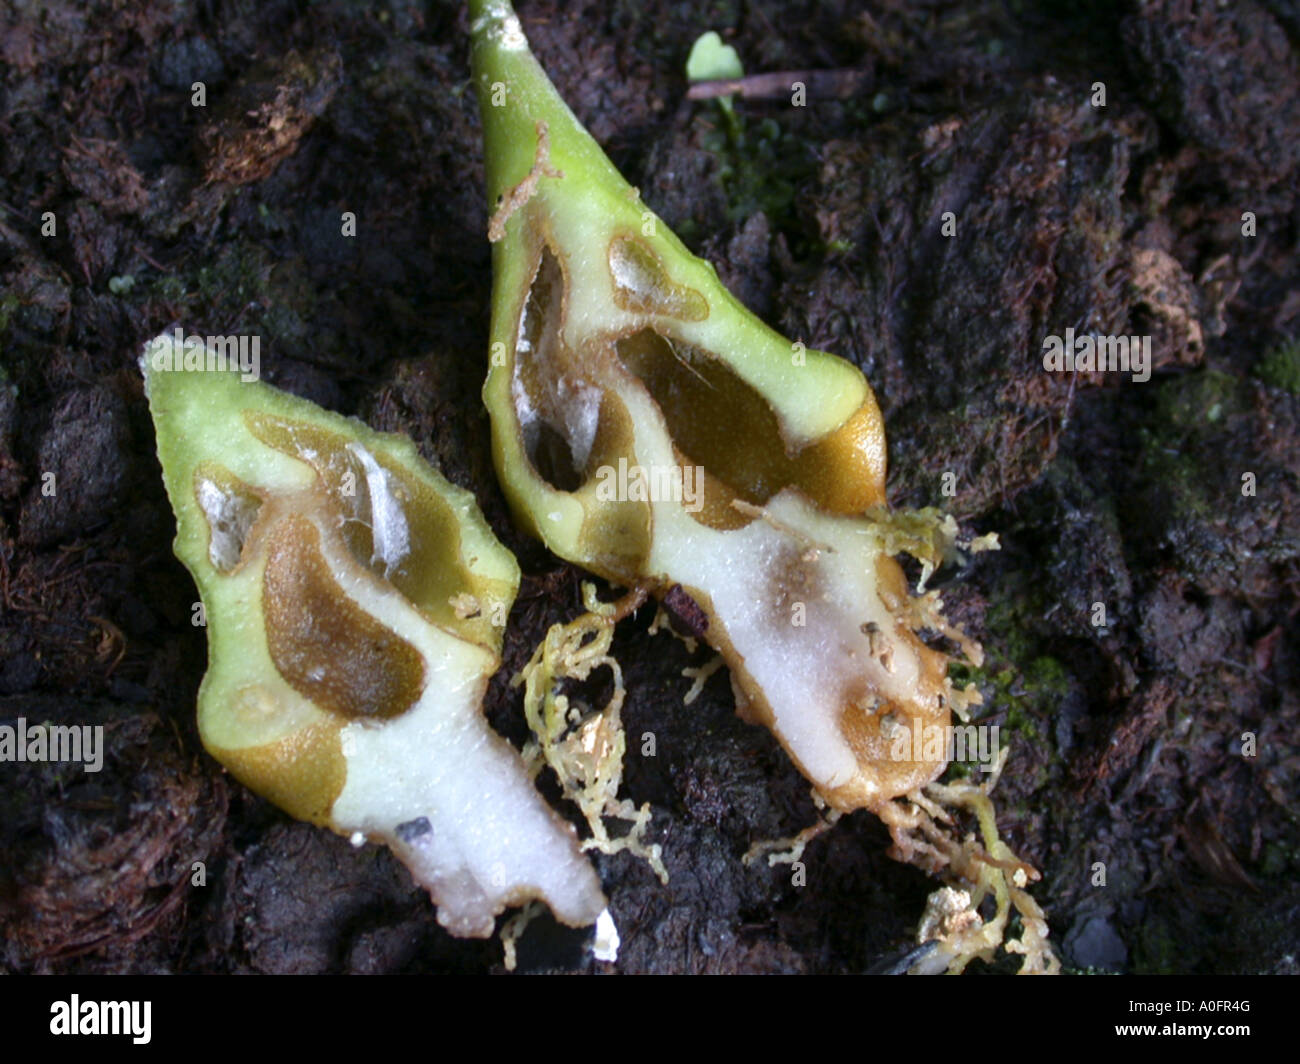 ant plant (Hydnophytum formicarium), excavete tubers inhabited by stinging ants Stock Photo